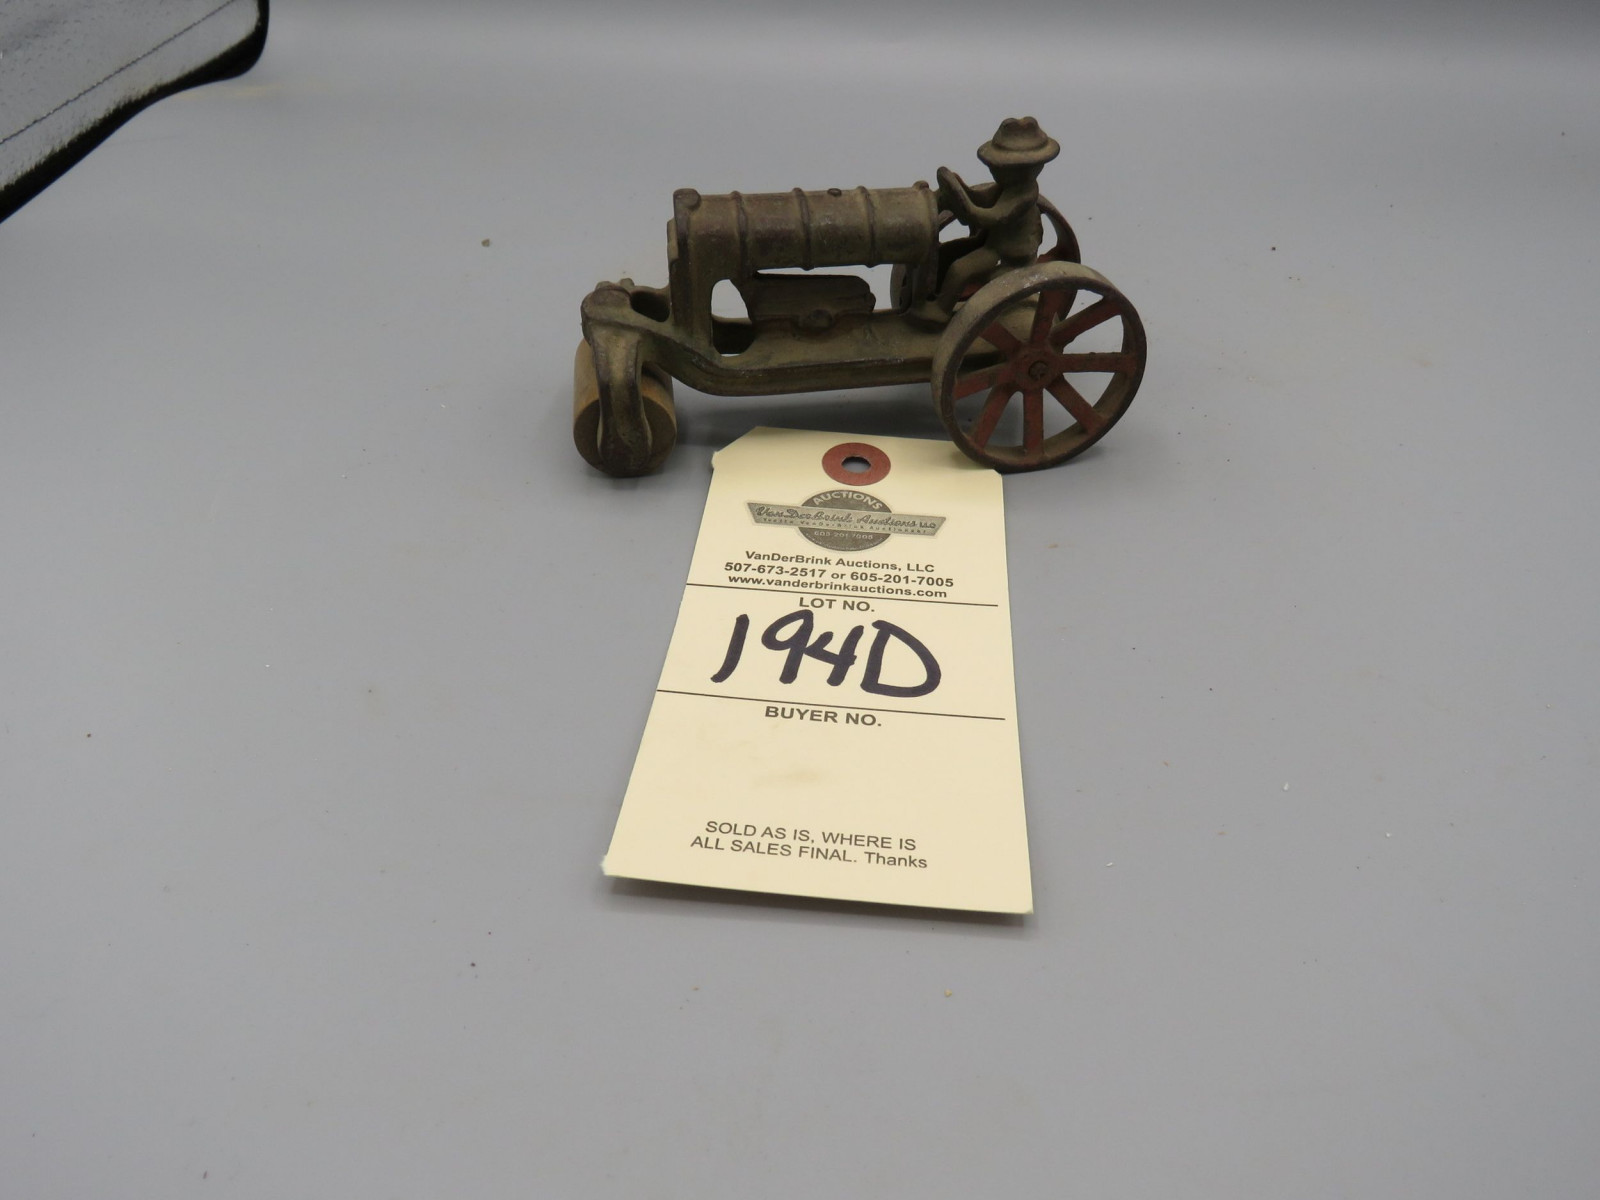 Arcade Dent Cast Iron Fordson Adams Roller -Tractor Approx. 4 inches - Image 1